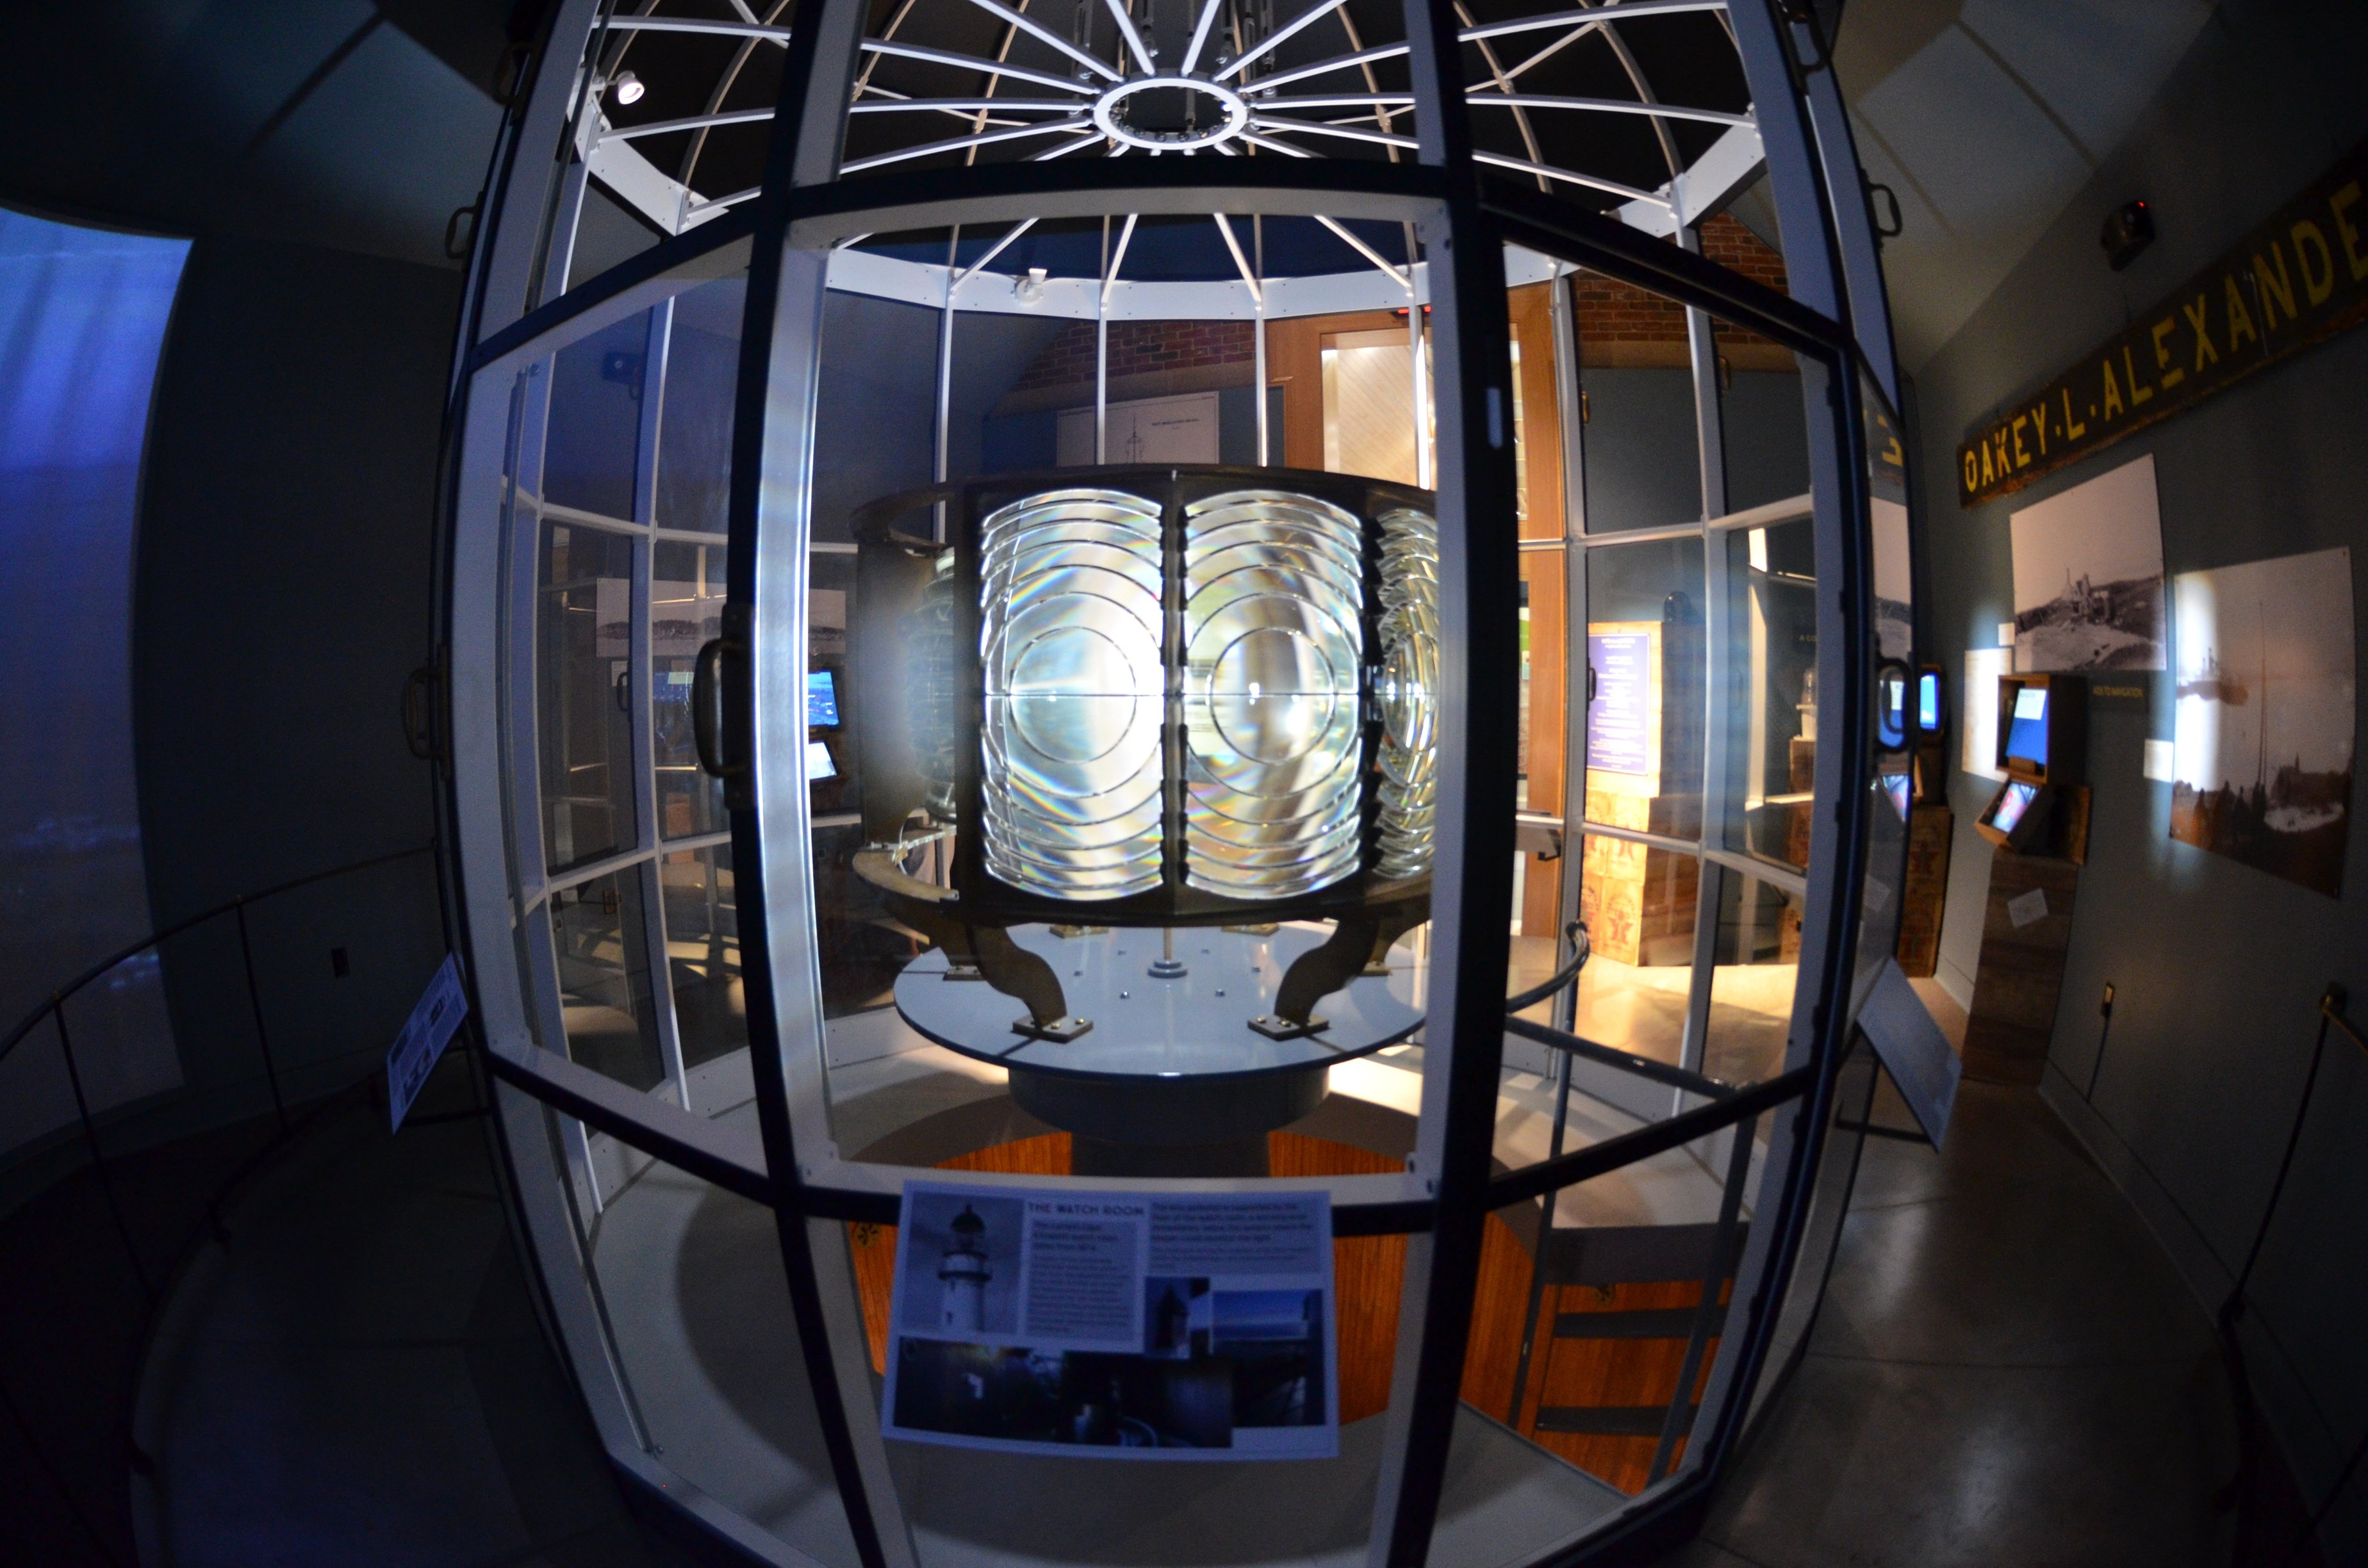 Feel what it's like to stand at the top of a lighthouse in our immersive exhibit Into the Lantern: A Lighthouse Experience.